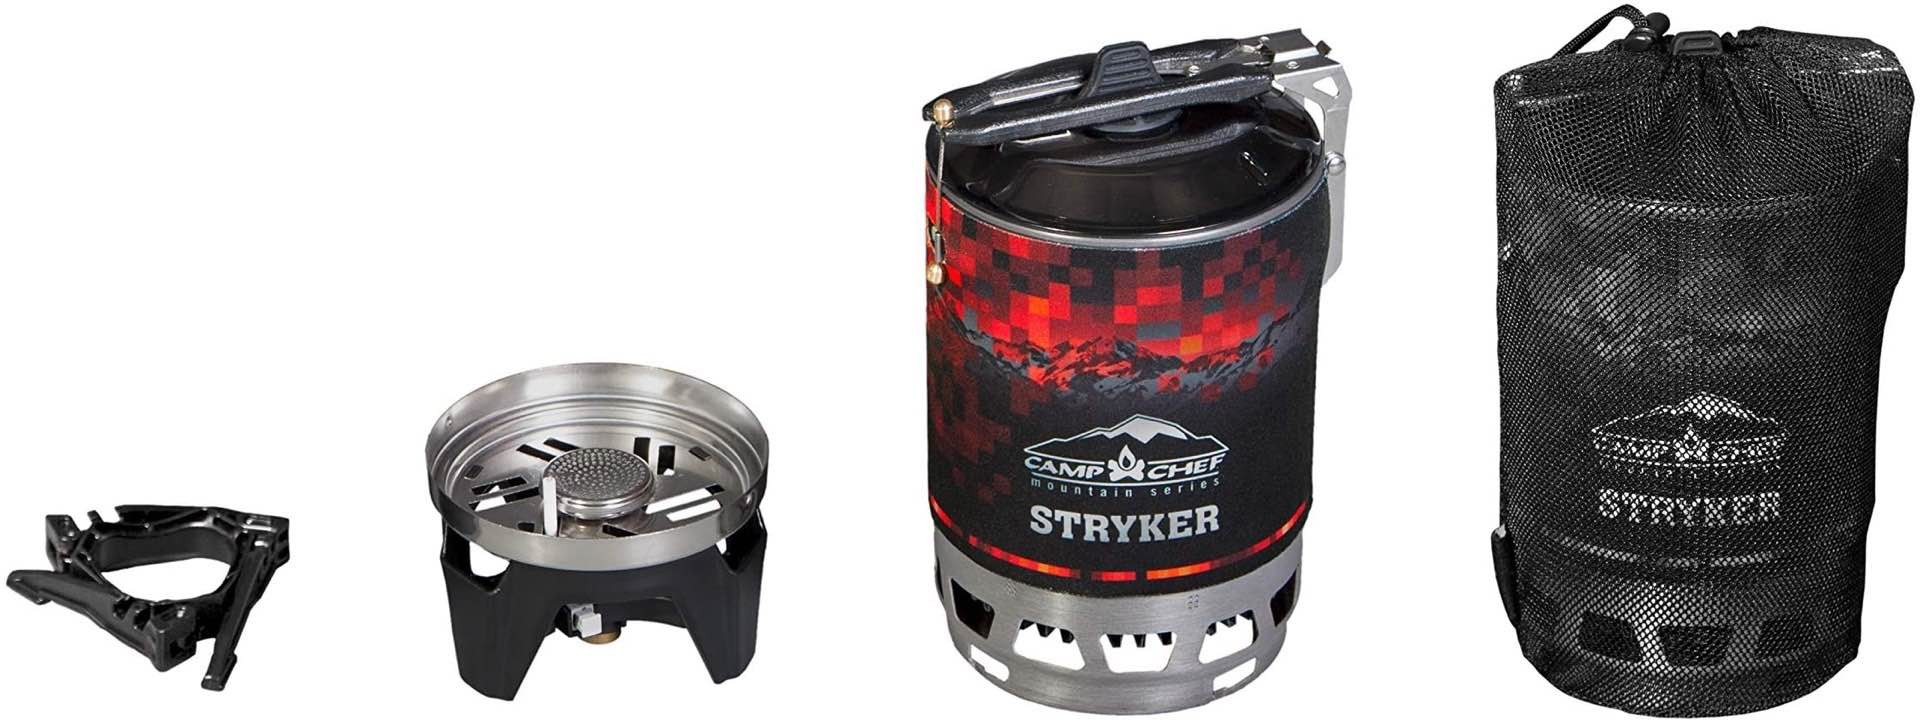 camp-chef-stryker-100-backpacking-stove-3